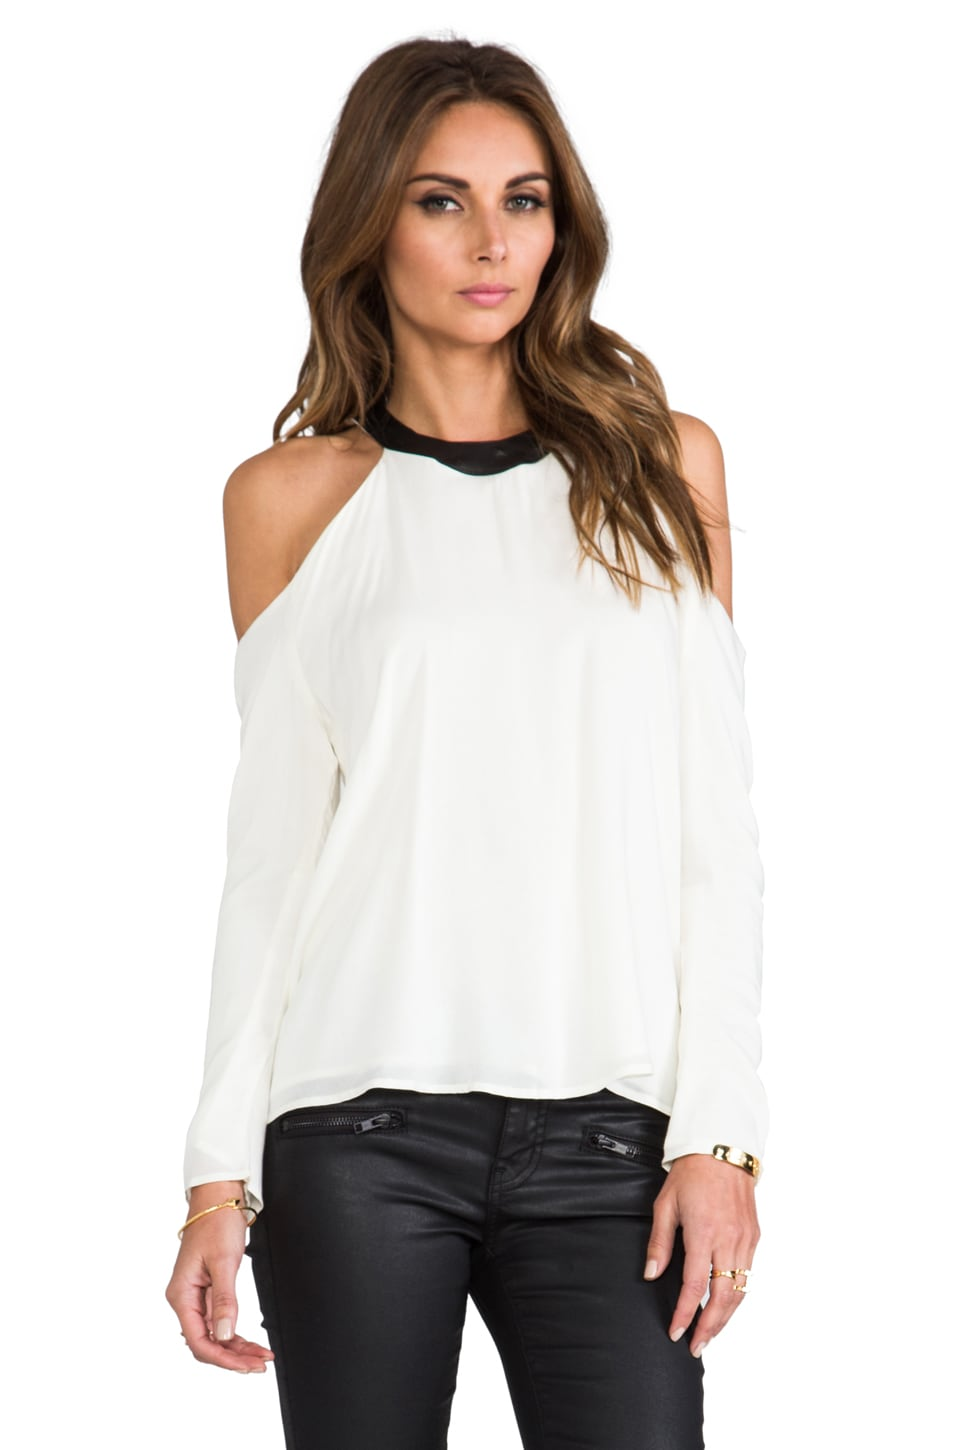 Boulee Mari Top in Ivory/Black